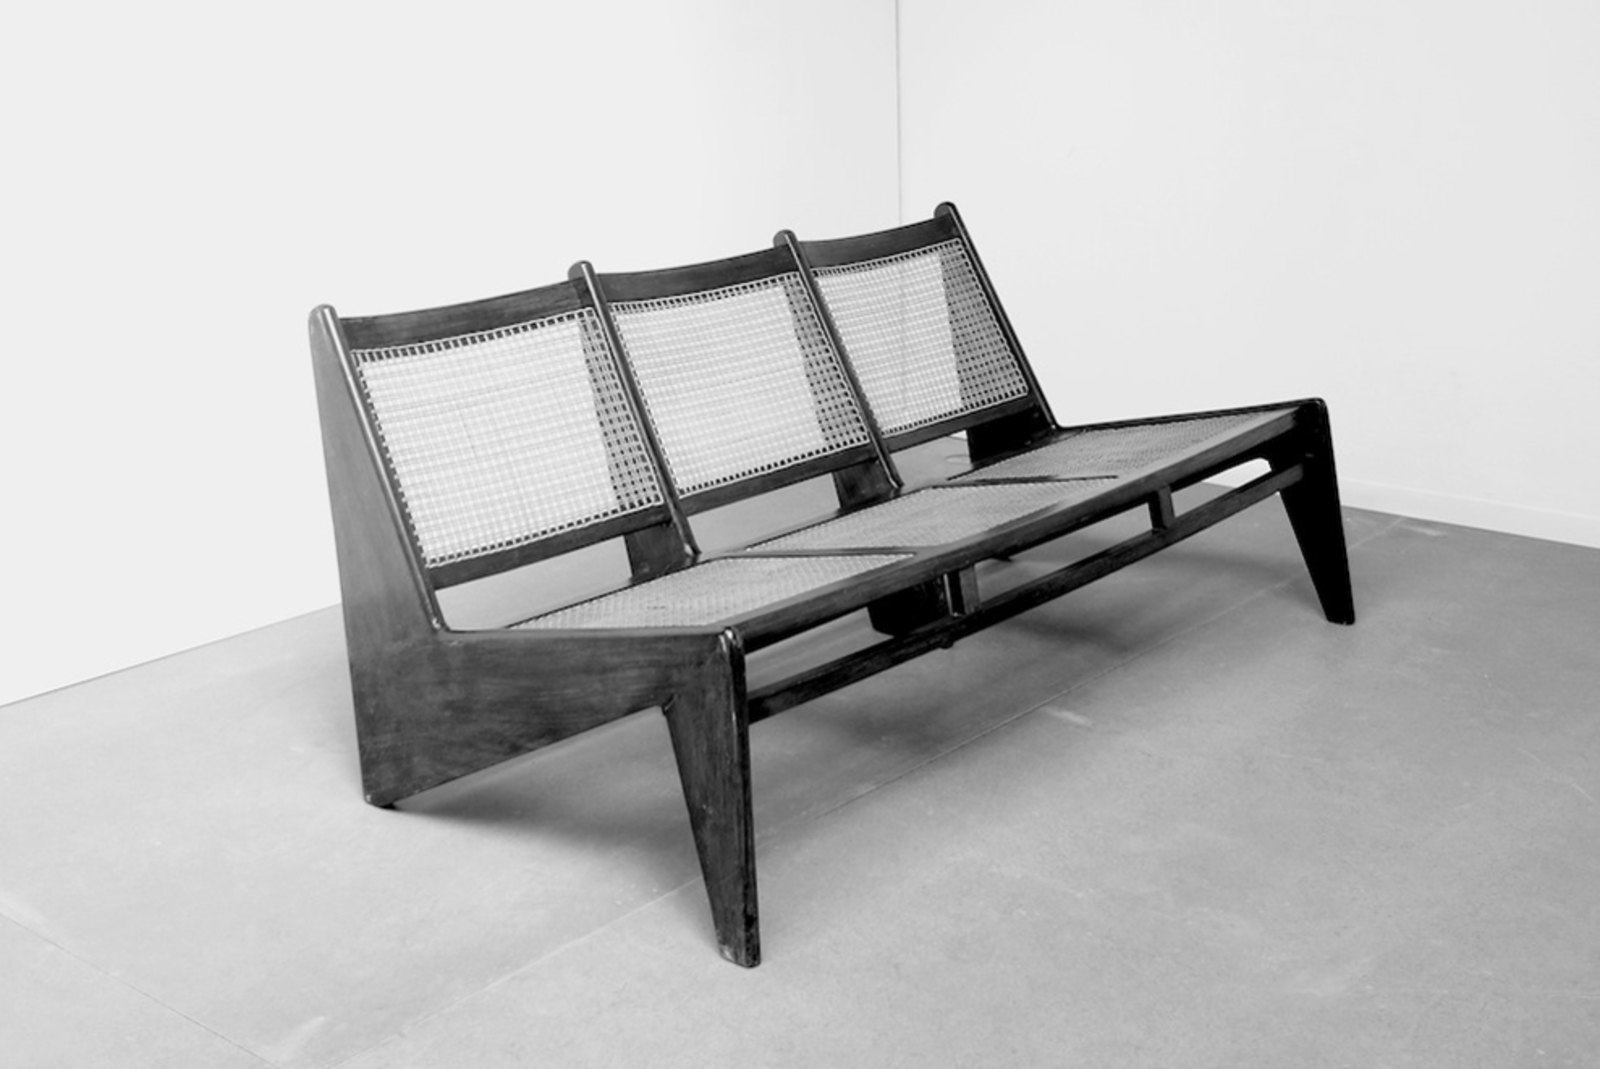 pierre jeanneret lecorbusier chandigarh la galerie jousse intramuros. Black Bedroom Furniture Sets. Home Design Ideas